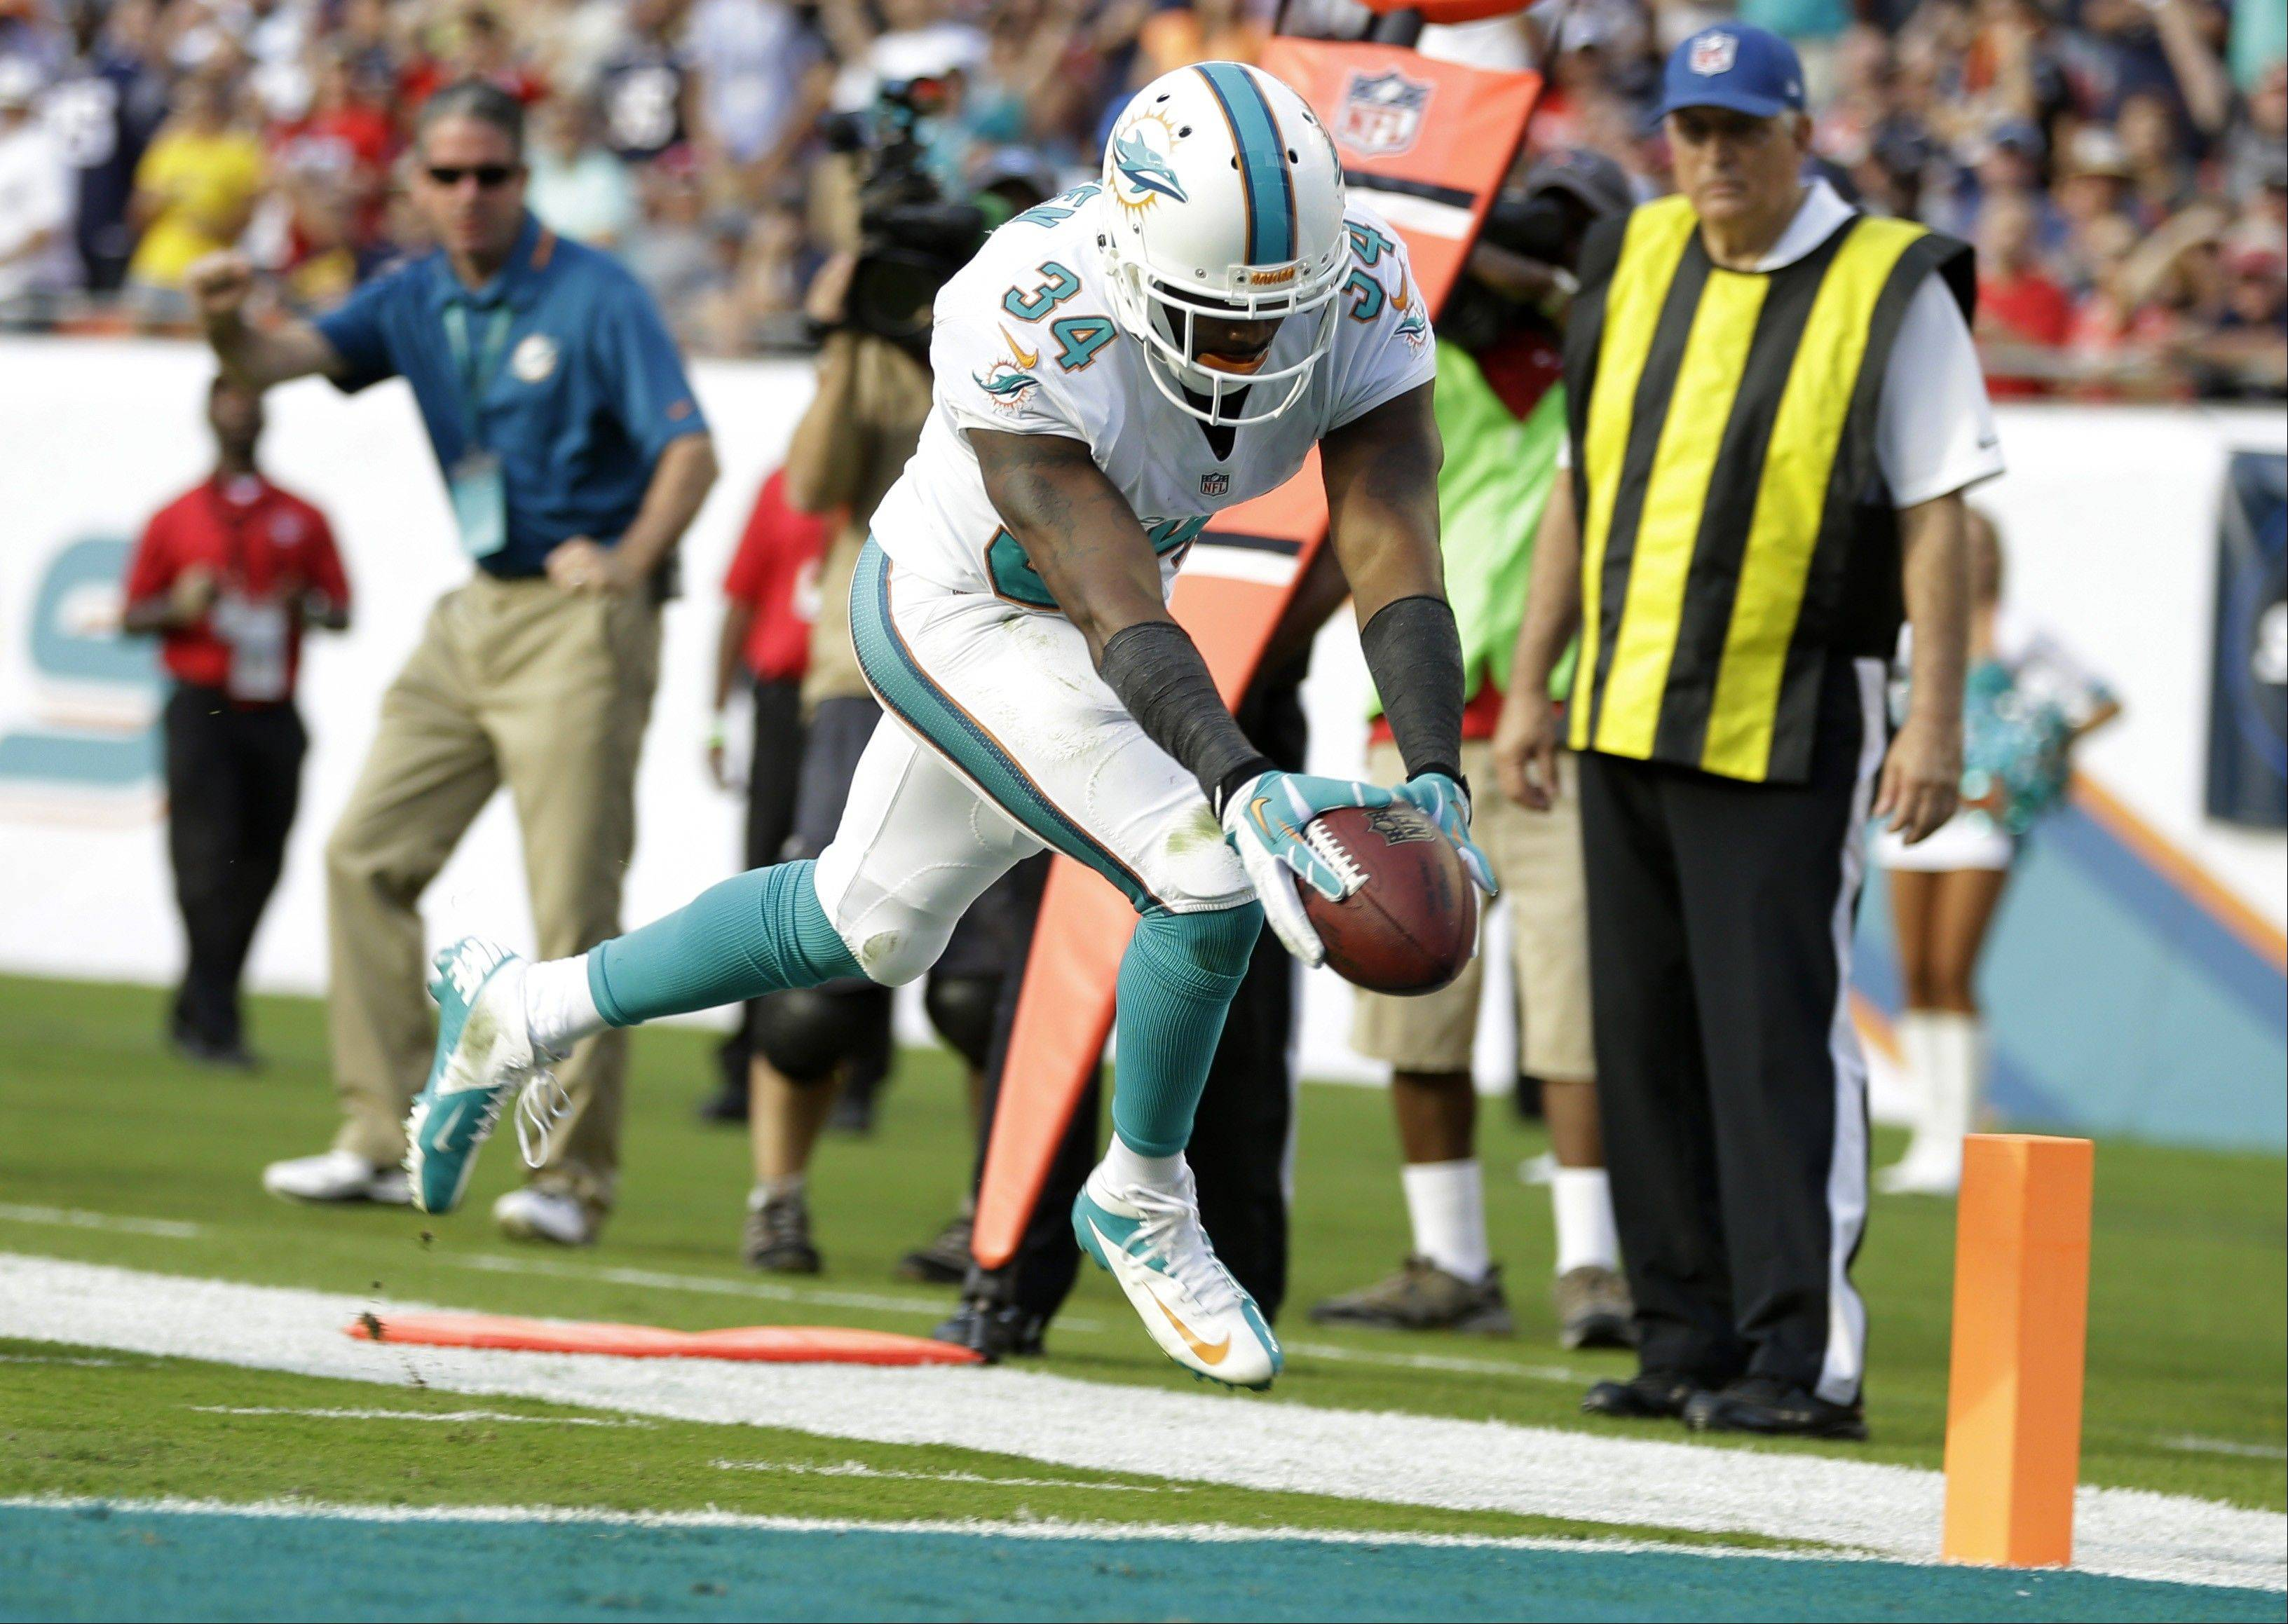 Miami Dolphins running back Marcus Thigpen (34) scores a touchdown during the second half of an NFL football game against the New England Patriots, Sunday, Dec. 15, 2013, in Miami Gardens, Fla.